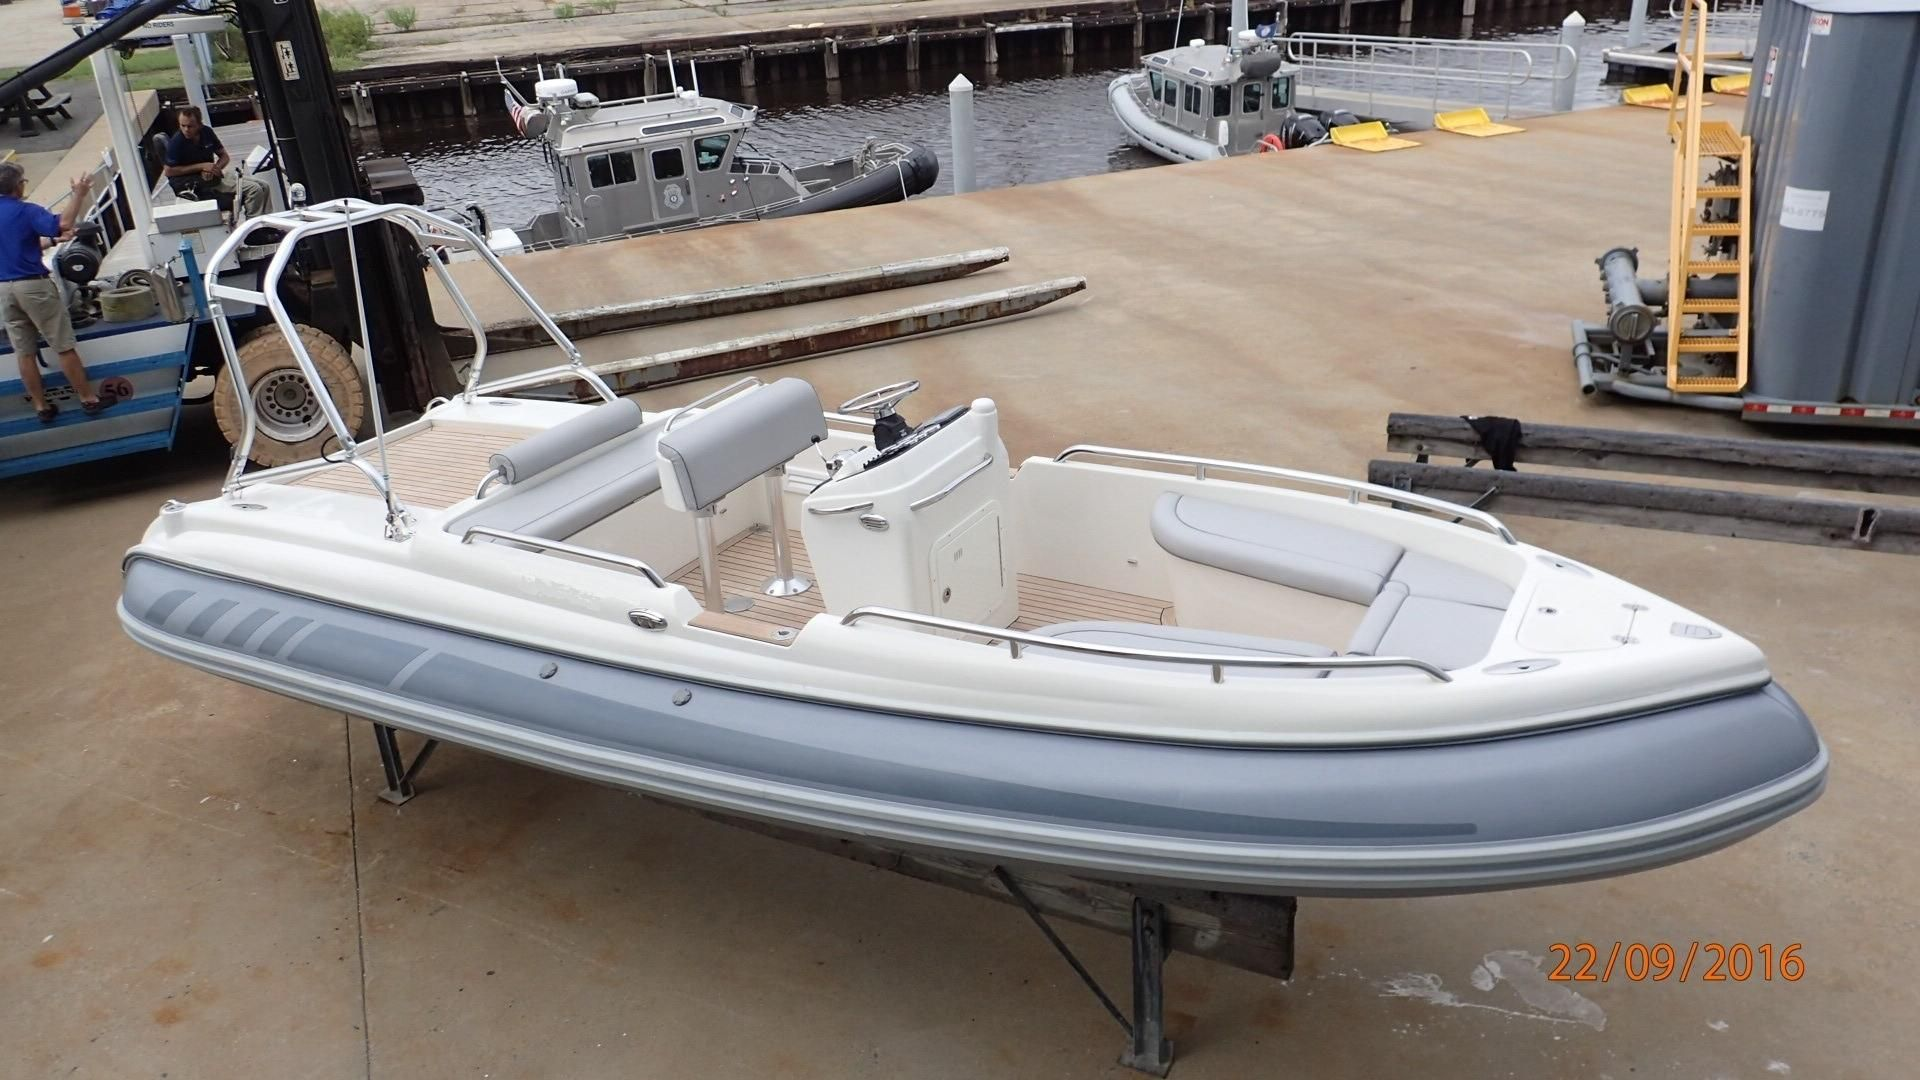 2009 Novurania CL 750 Power Boat For Sale - www.yachtworld.com